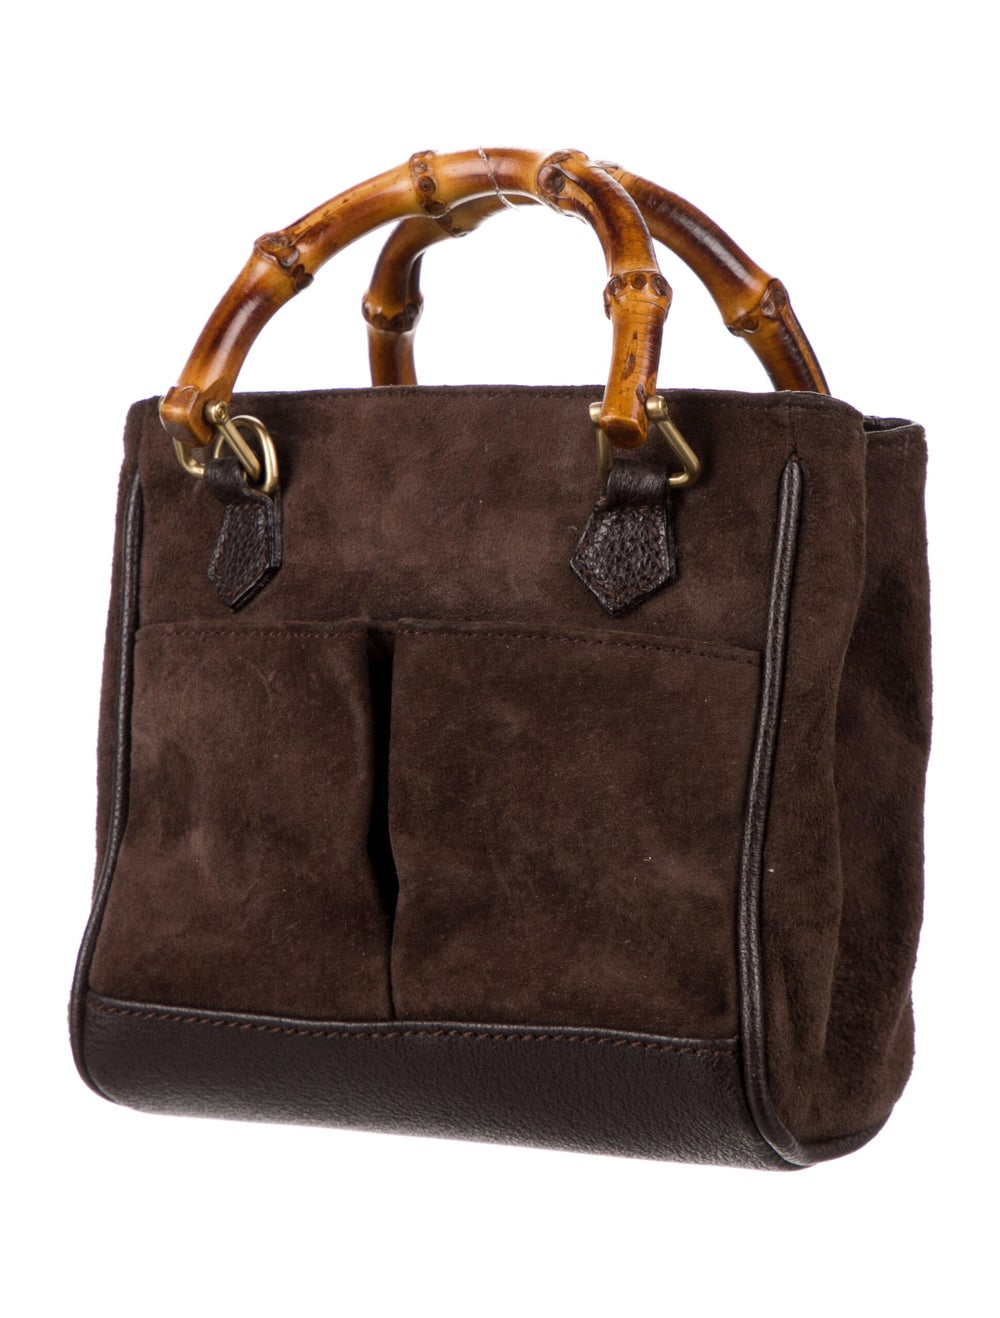 Gucci Vintage Bamboo Mini Suede Diana Bag Brown - image 3